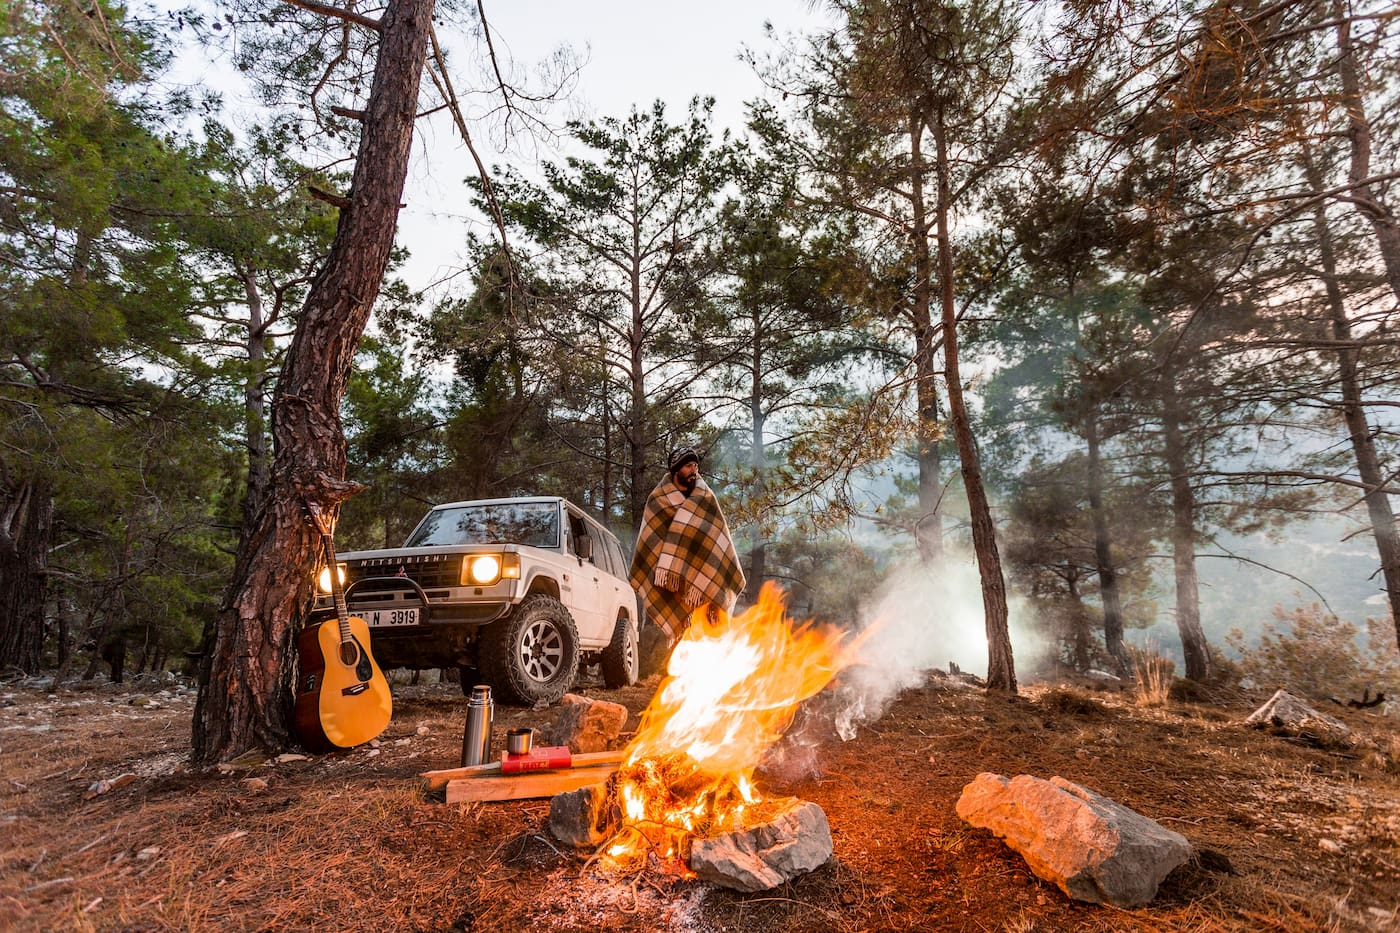 SUV parked in the woods beside a campfire.